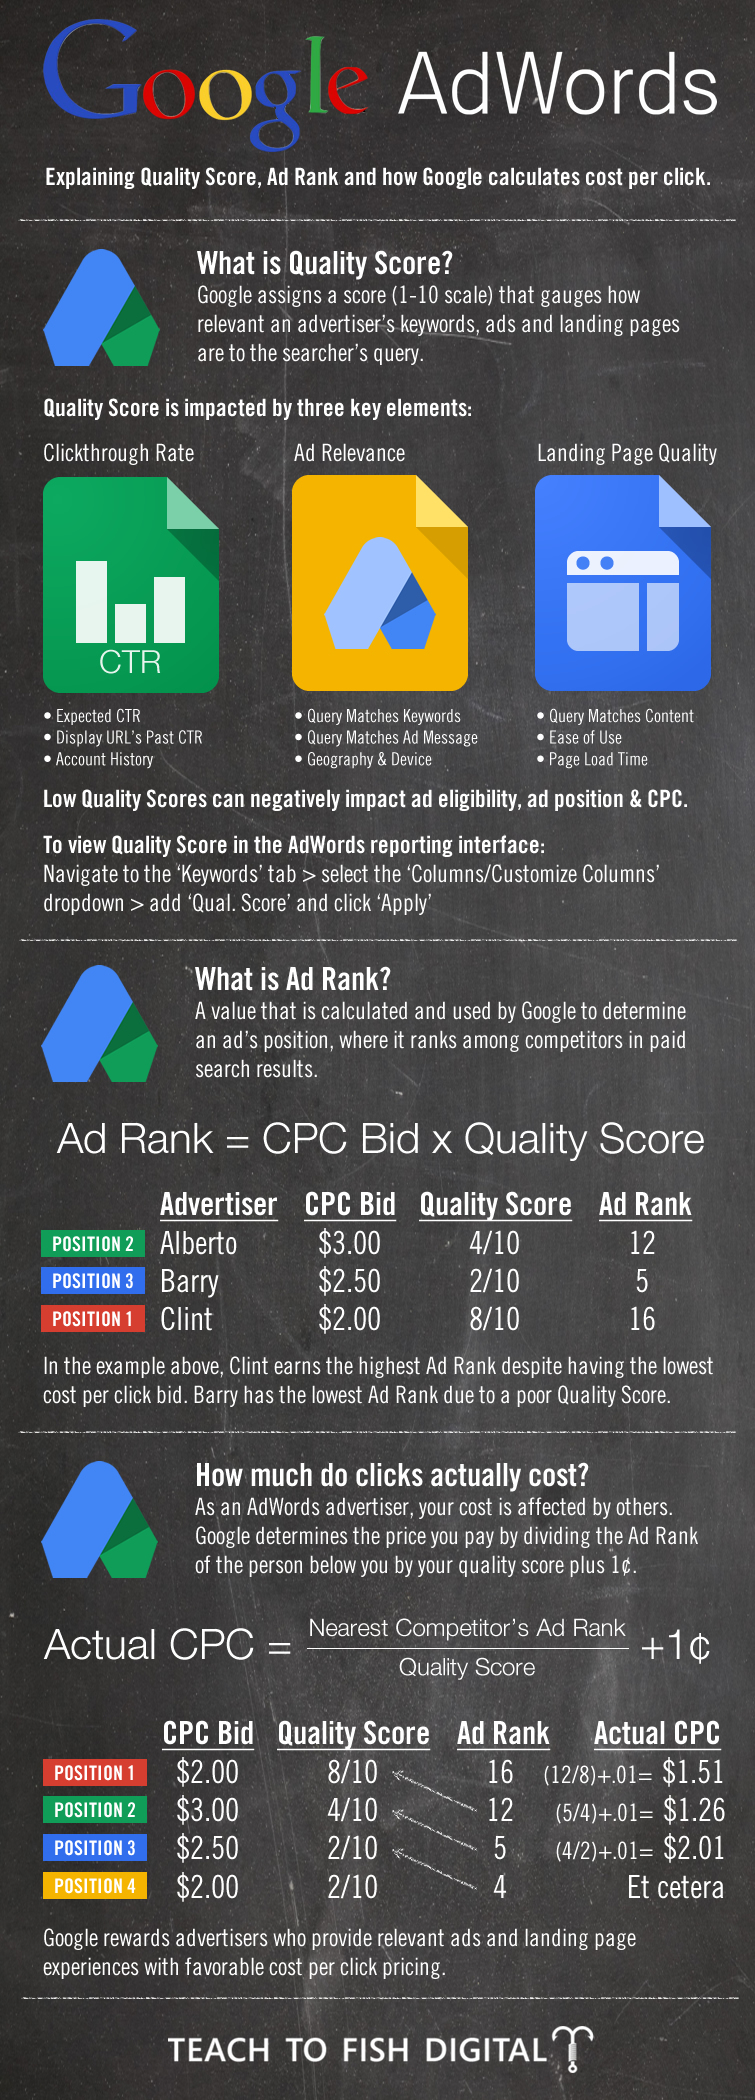 Google AdWords Infographic | Teach To Fish Digital